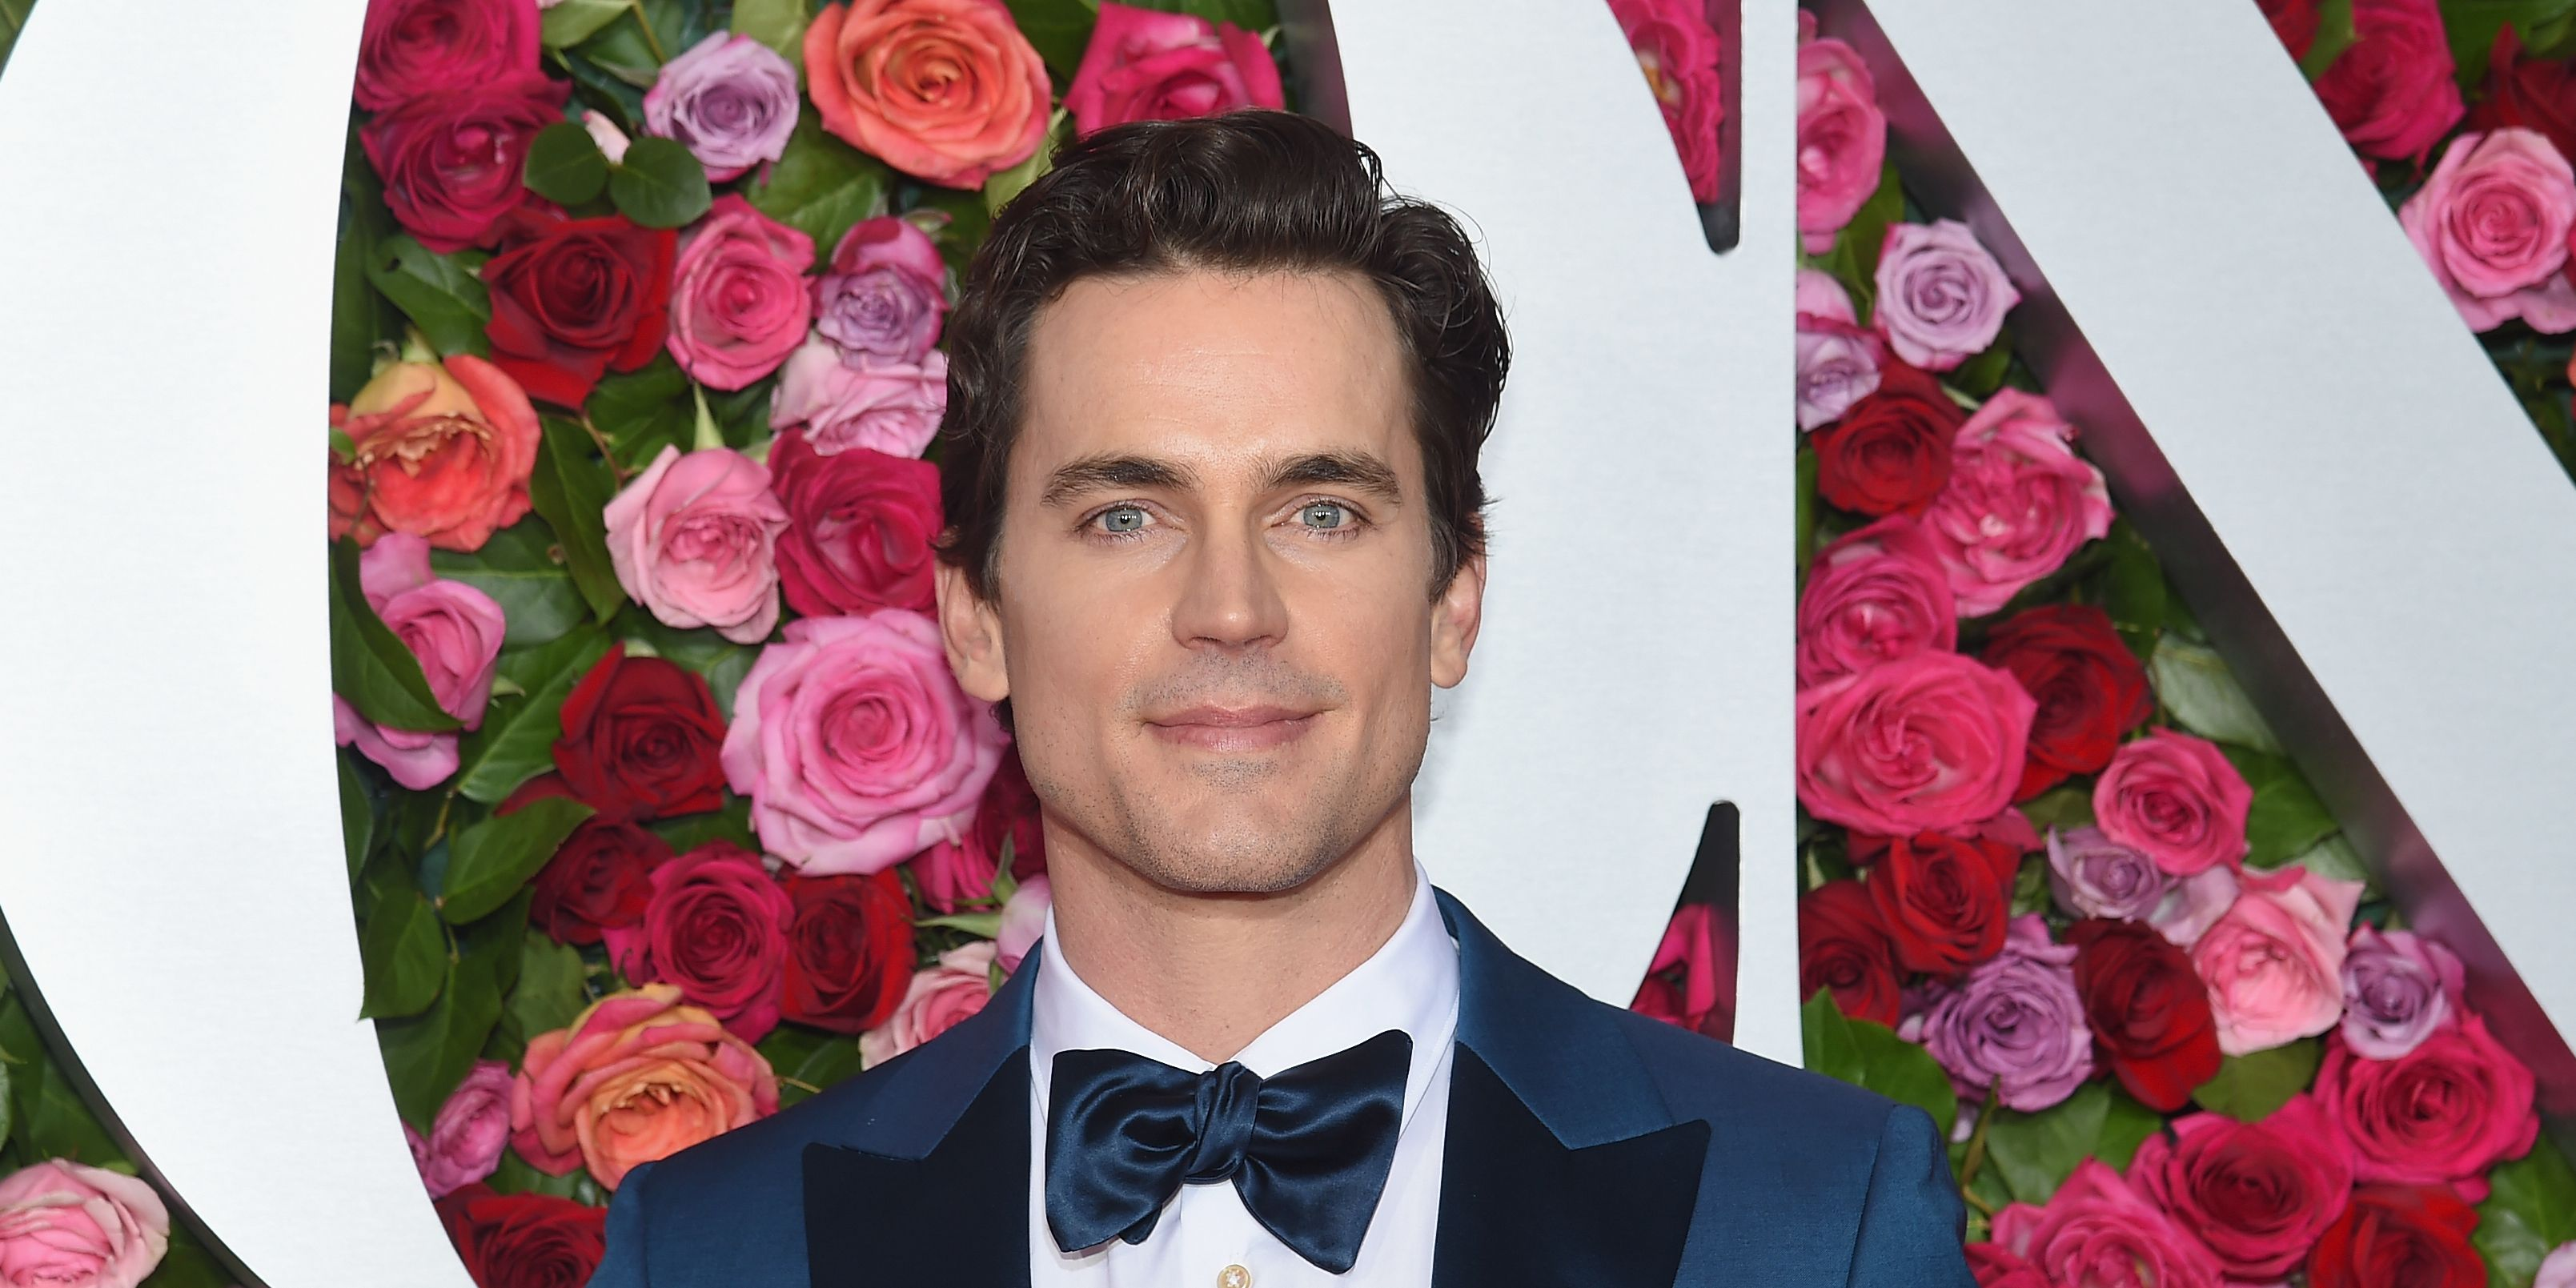 Matt Bomer attends the 72nd Annual Tony Awards at Radio City Music Hall on June 10, 2018